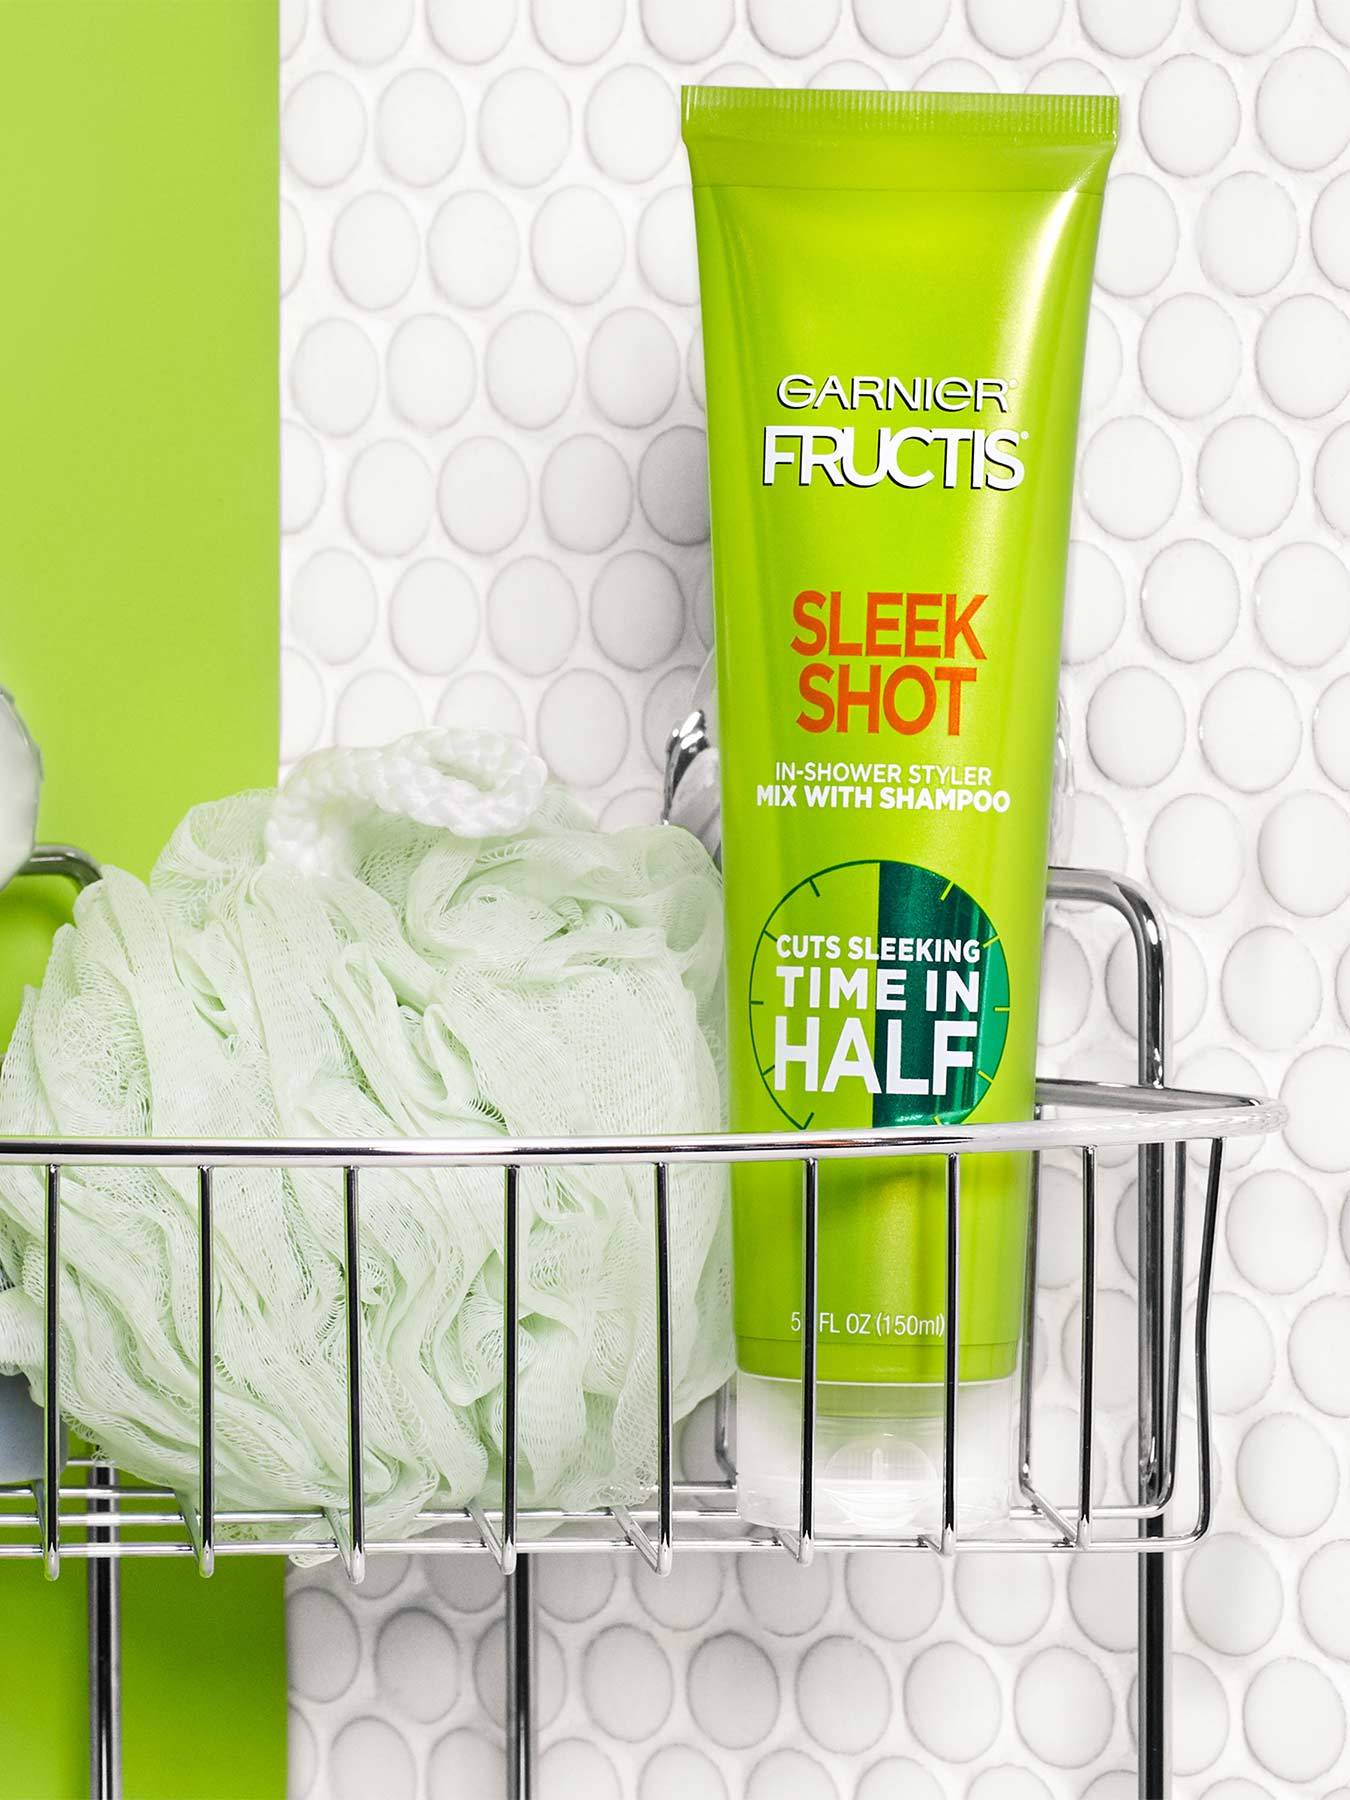 Sleek Shot In-Shower Styler in a shower rack with green-grey soap and a light green bath poof in a green and dotted-white bathroom.